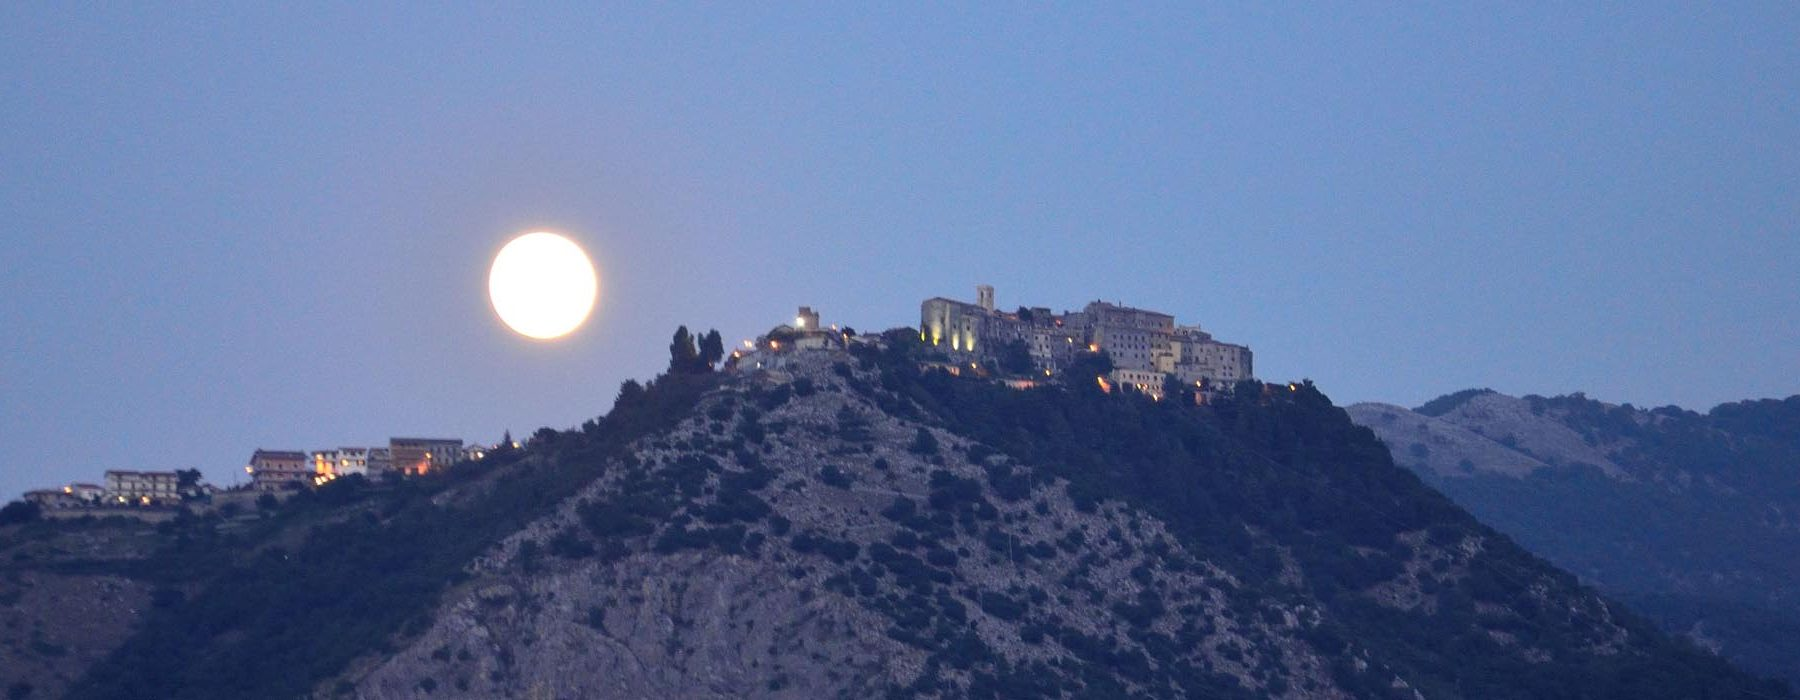 Rocca Massima: an ancient village with breathtaking views